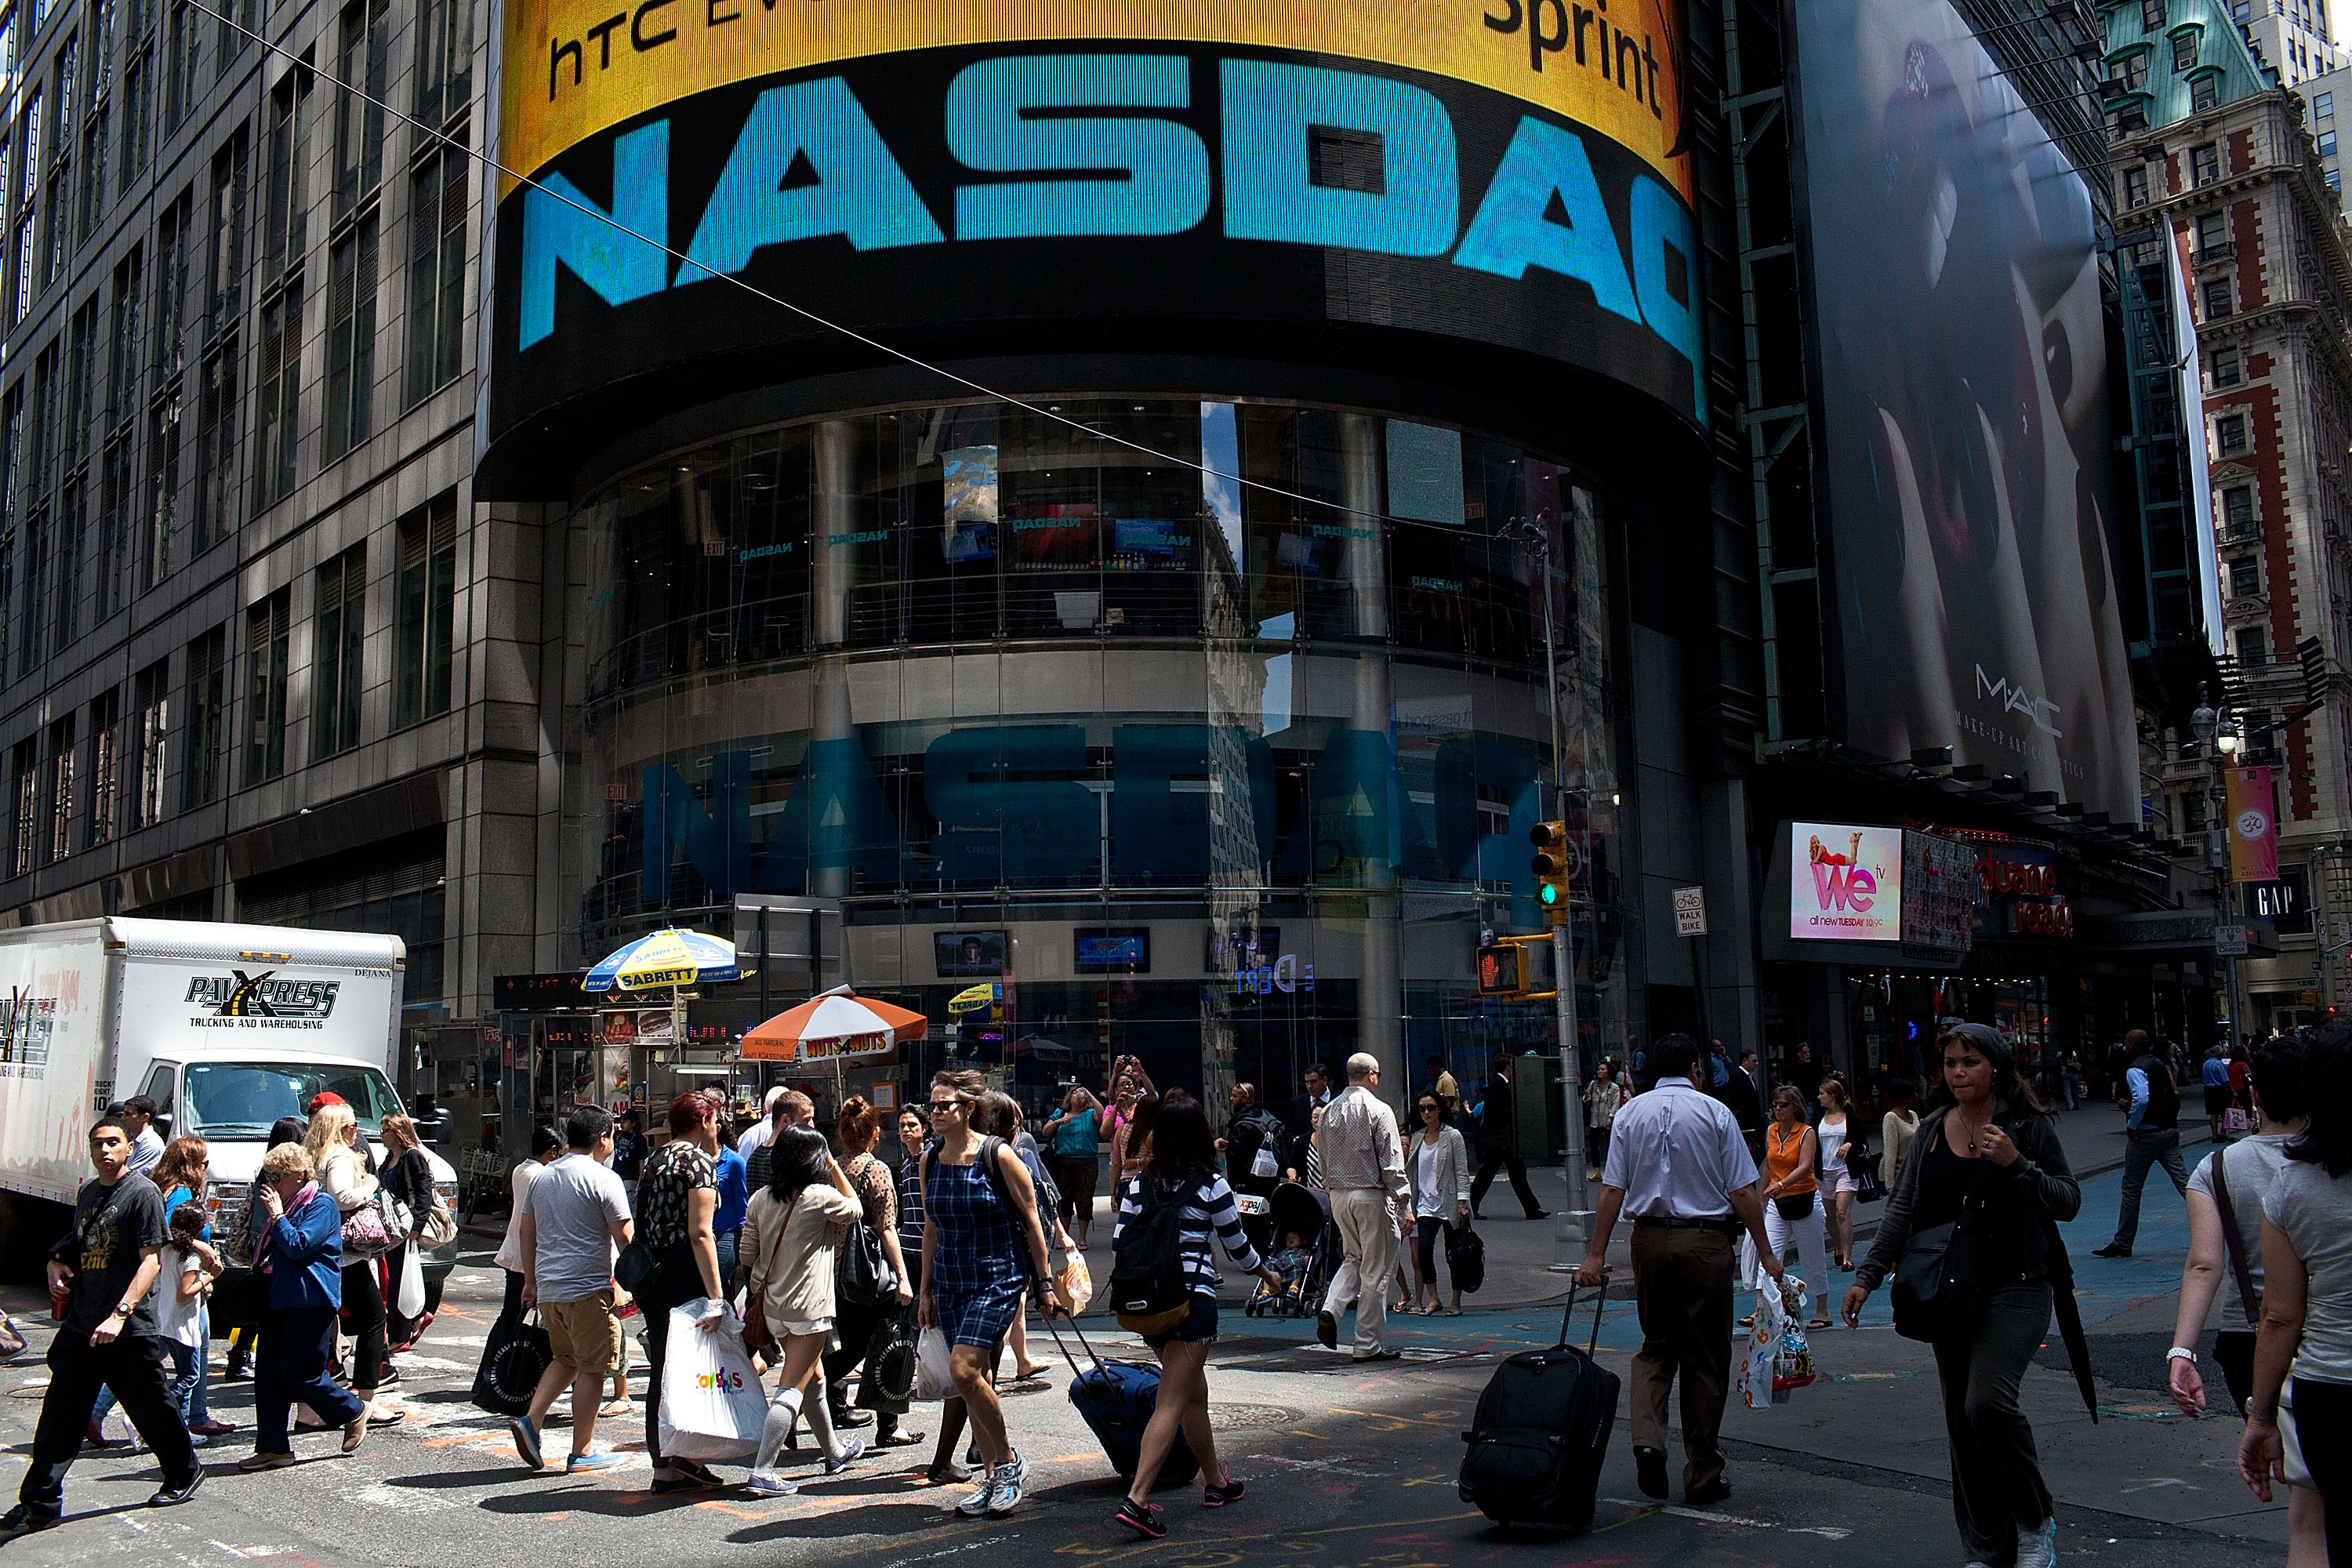 The entrance to the Nasdaq building with pedestrians walking by